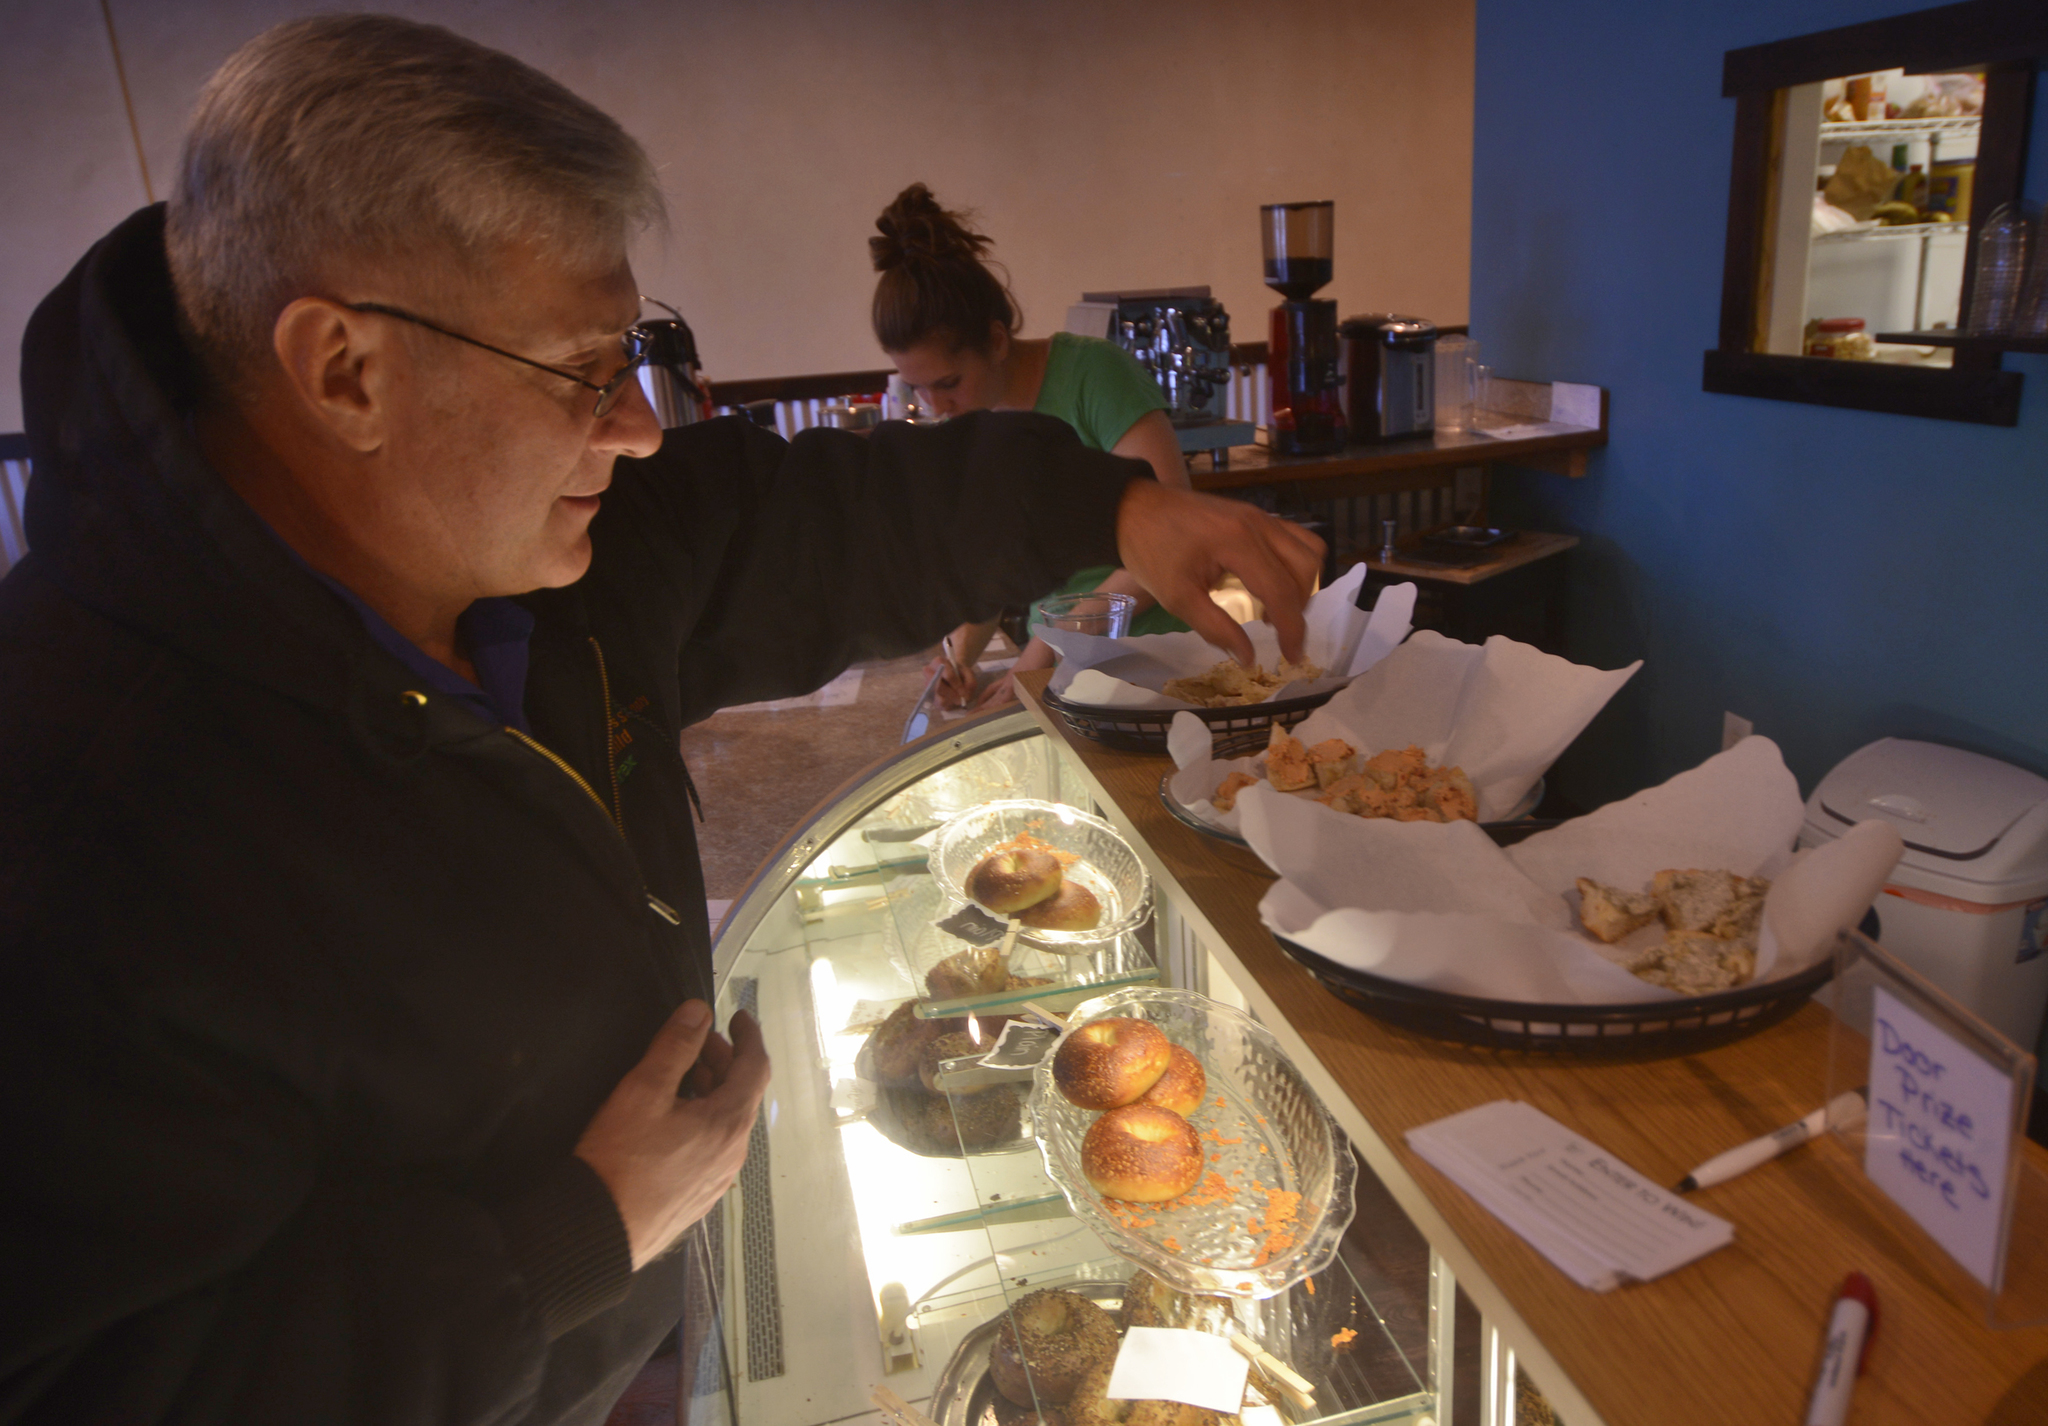 """Jeff Warton samples three flavors of bagel spread at the grand opening of the Kenai location of Everything Bagels on Tuesday, Jan. 31,2017 in Kenai, Alaska. The grand opening comes 13 days after the Kenai shop had its soft opening on Jan. 18, seven months after Everything Bagels opened its first location in Soldotna on July 15, 2016, and on the one-year anniversary of co-owners Matt and Pamela Parker (with Brooke and John Campbell) making their first batch of bagels in their home kitchen, Pamela Parker said. """"We came from Florida, where all the New Yorkers go to retire, so there's tons of delicious bagels there,"""" she said. """"We wanted to bring that up here."""" (Ben Boettger/Peninsula Clarion)"""